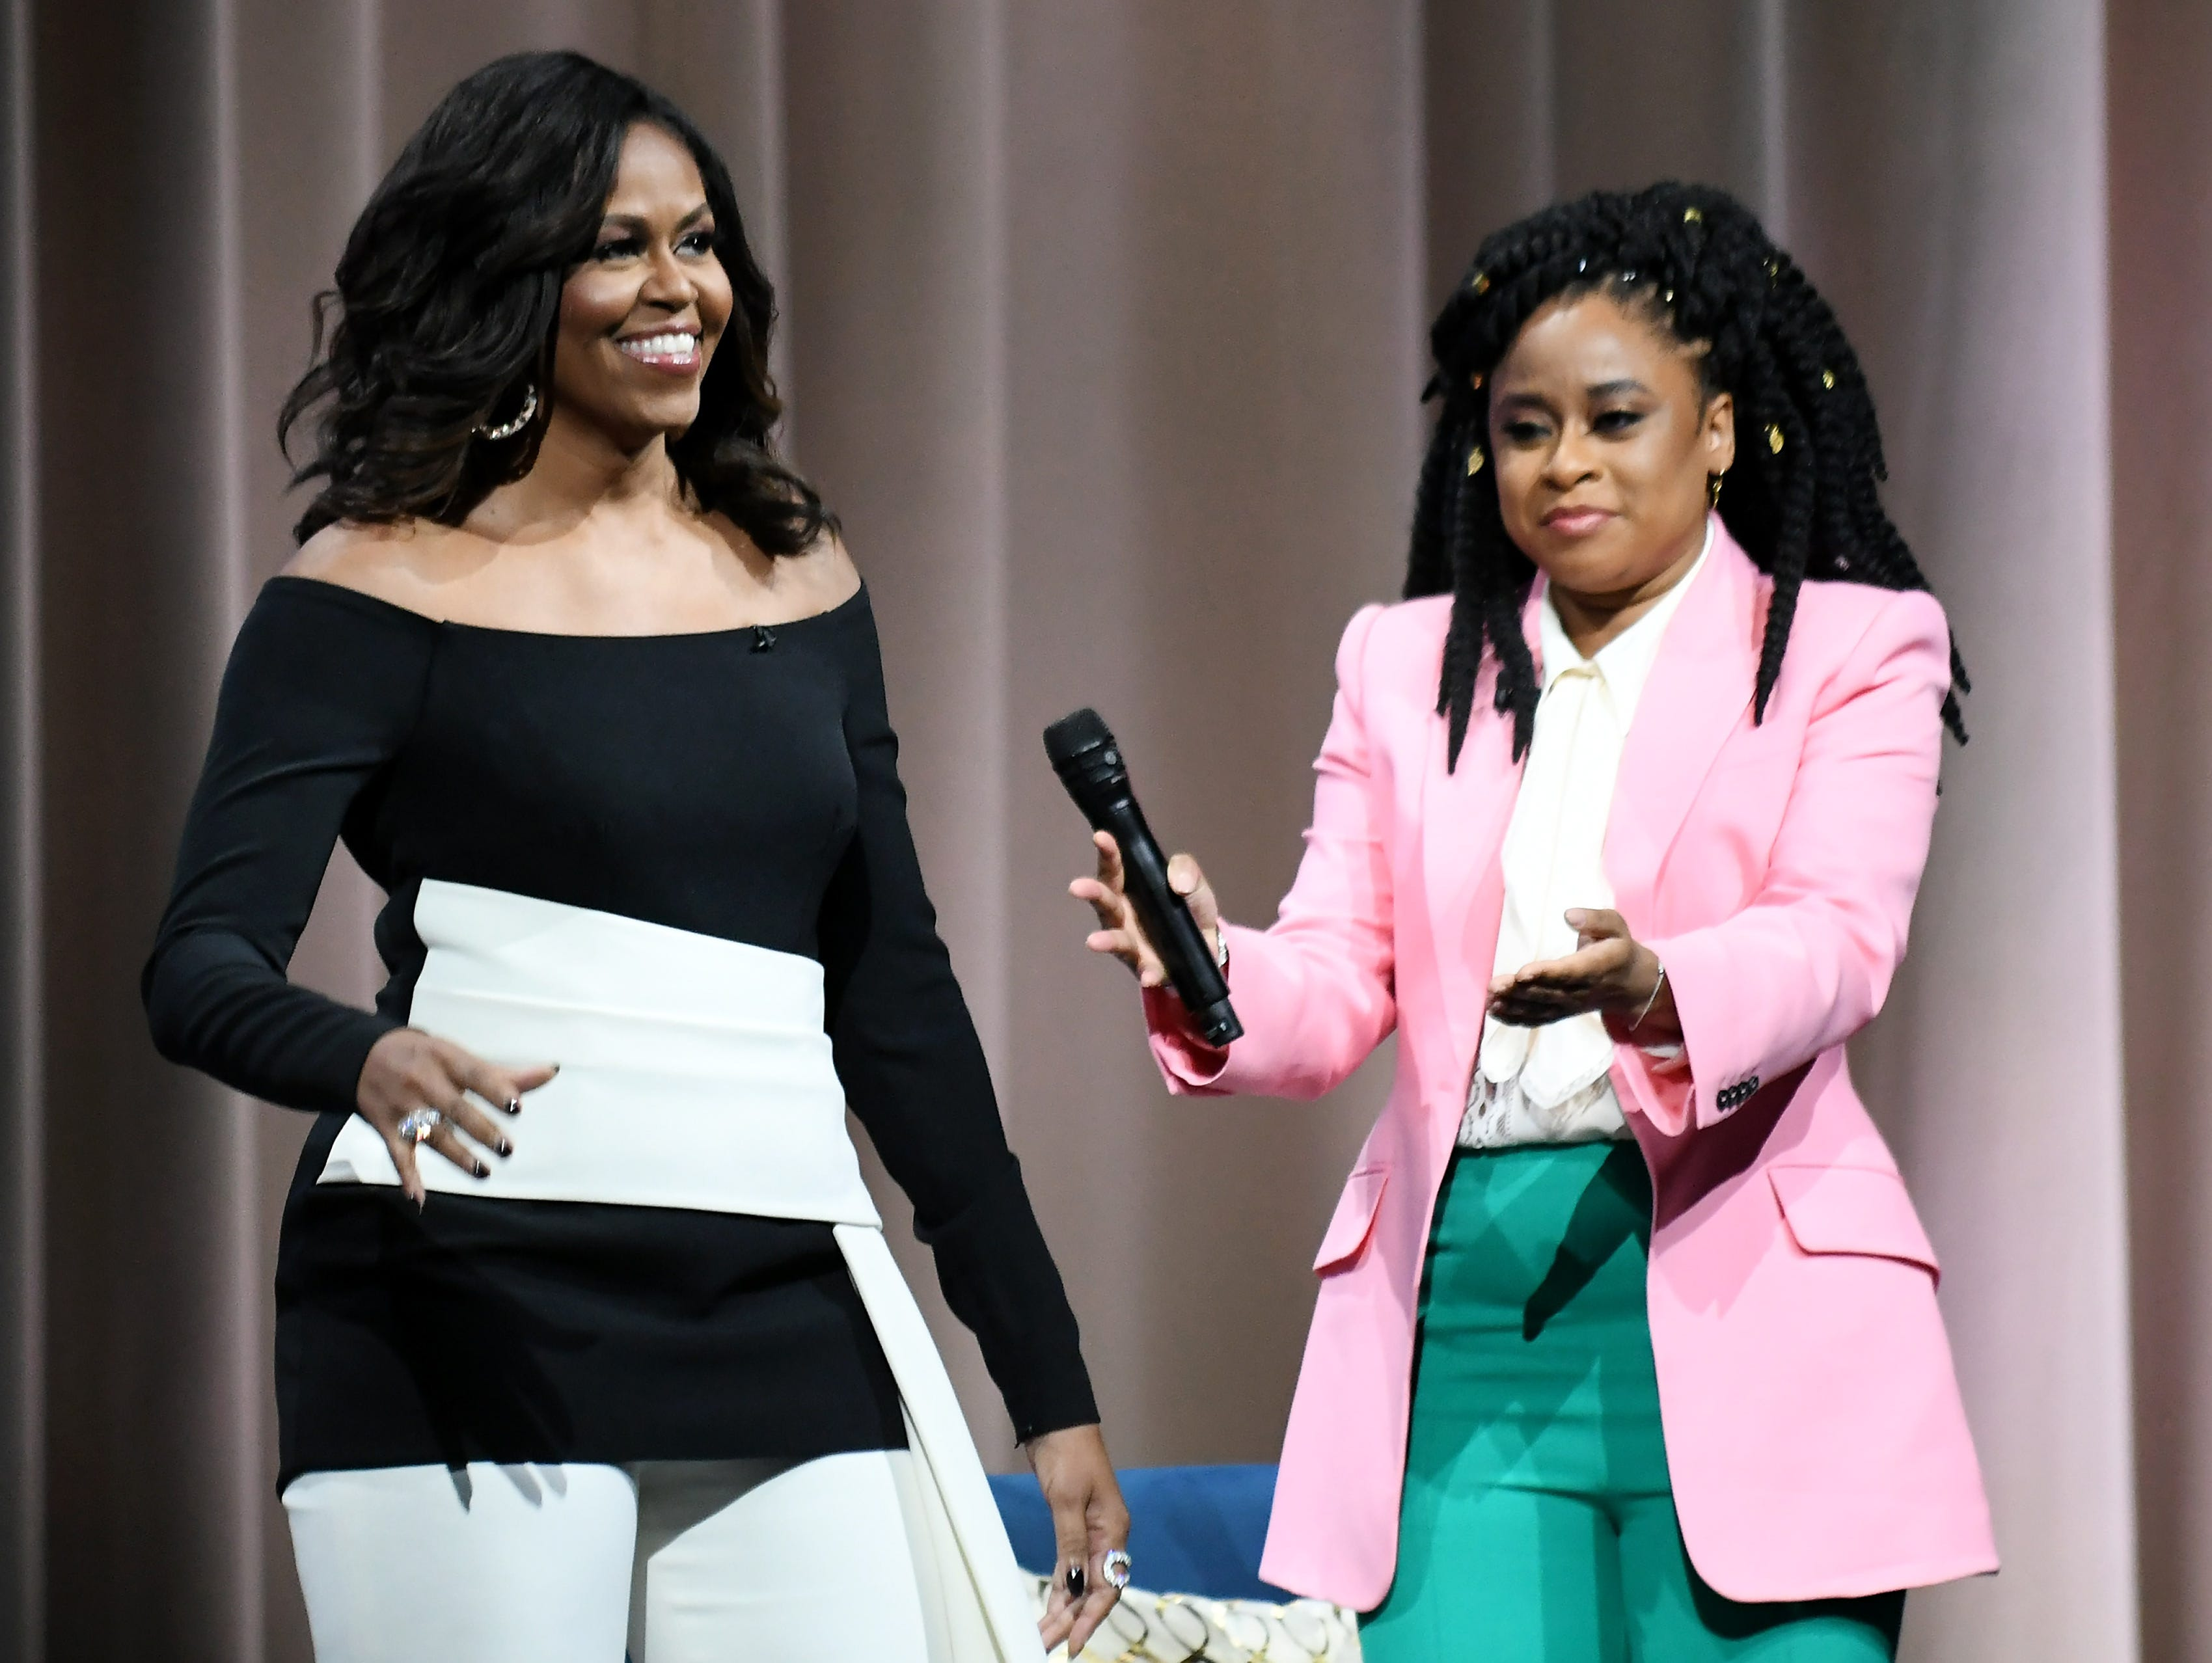 Michelle Obama comes on stage with moderator Phoebe Robinson, right, at Becoming: An Intimate Conversation with Michelle Obama at Little Caesars Arena in Detroit on Dec. 11, 2018.